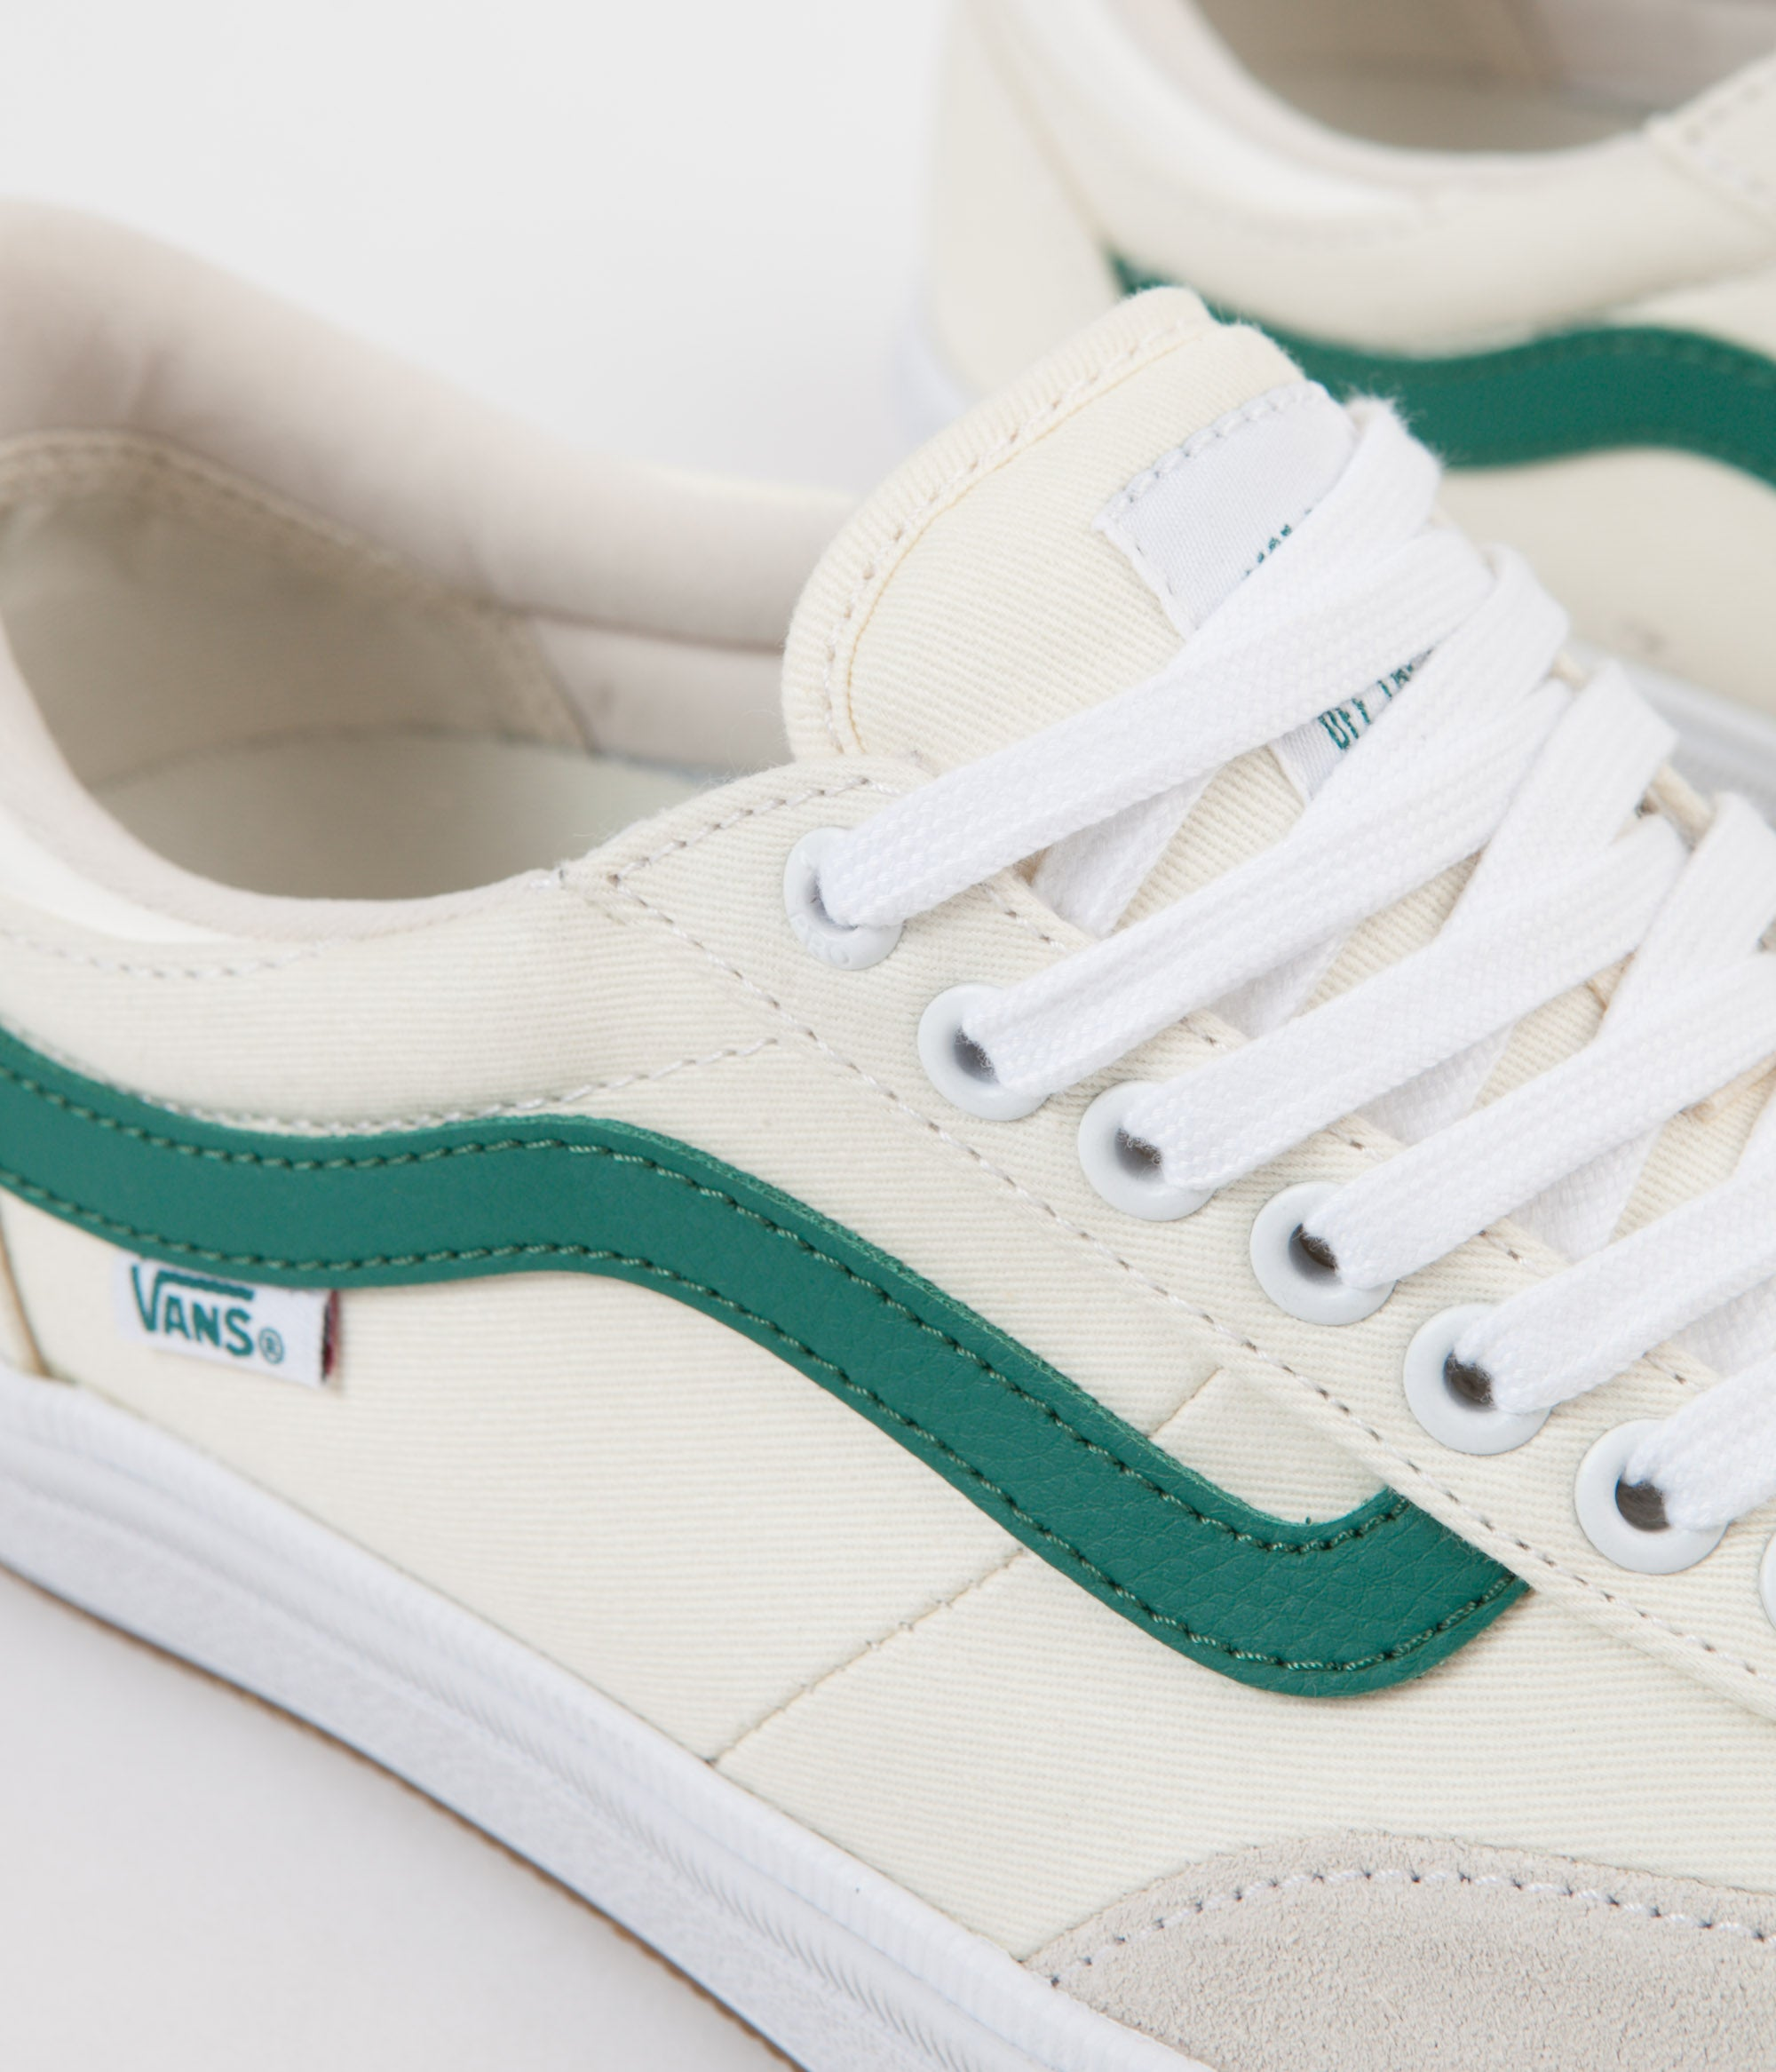 Vans Gilbert Crockett 2 Pro Centre Court Shoes - Classic White / Evergreen